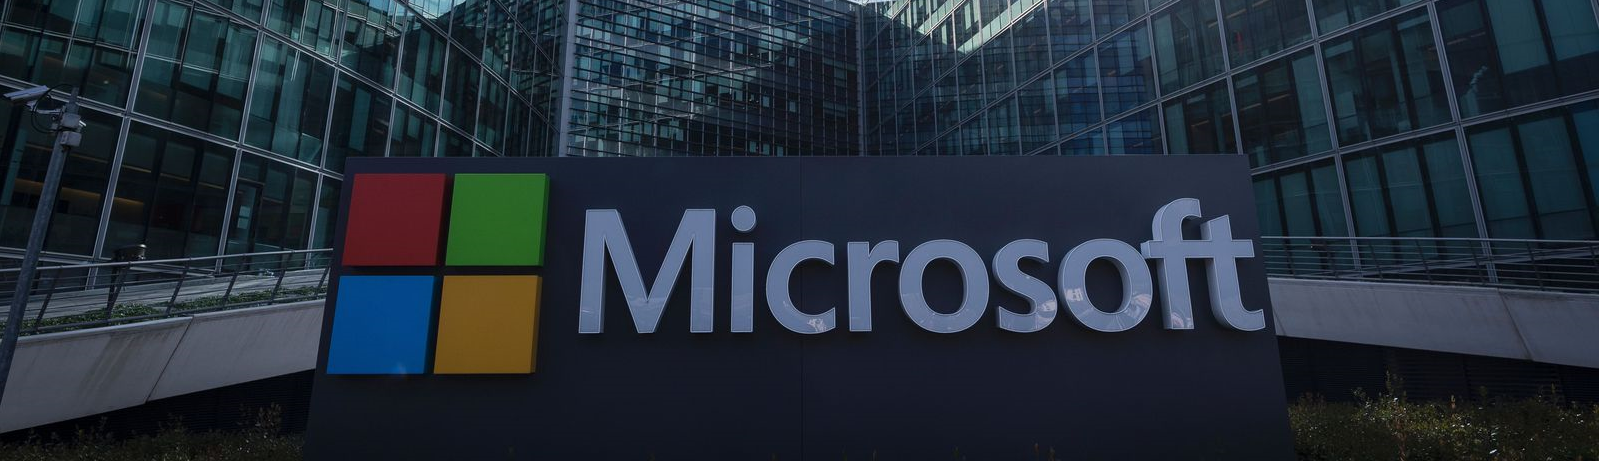 Microsoft's Patch Tuesday Brings 50 New Security Fixes